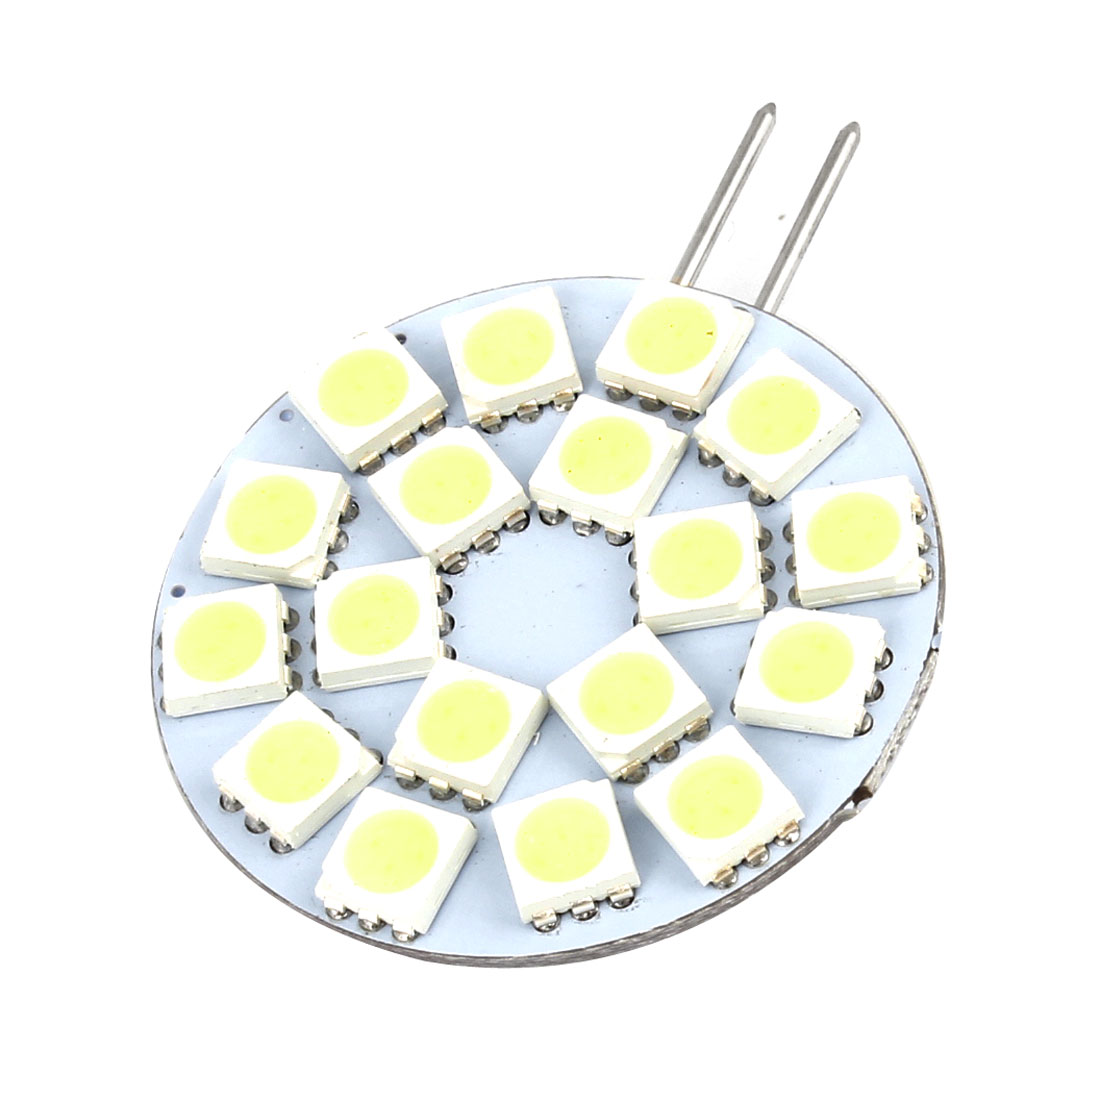 G4 White 5050 SMD 2 Side Pin 18-LEDs Bulb Dashboard Light Lamp for Auto Internal